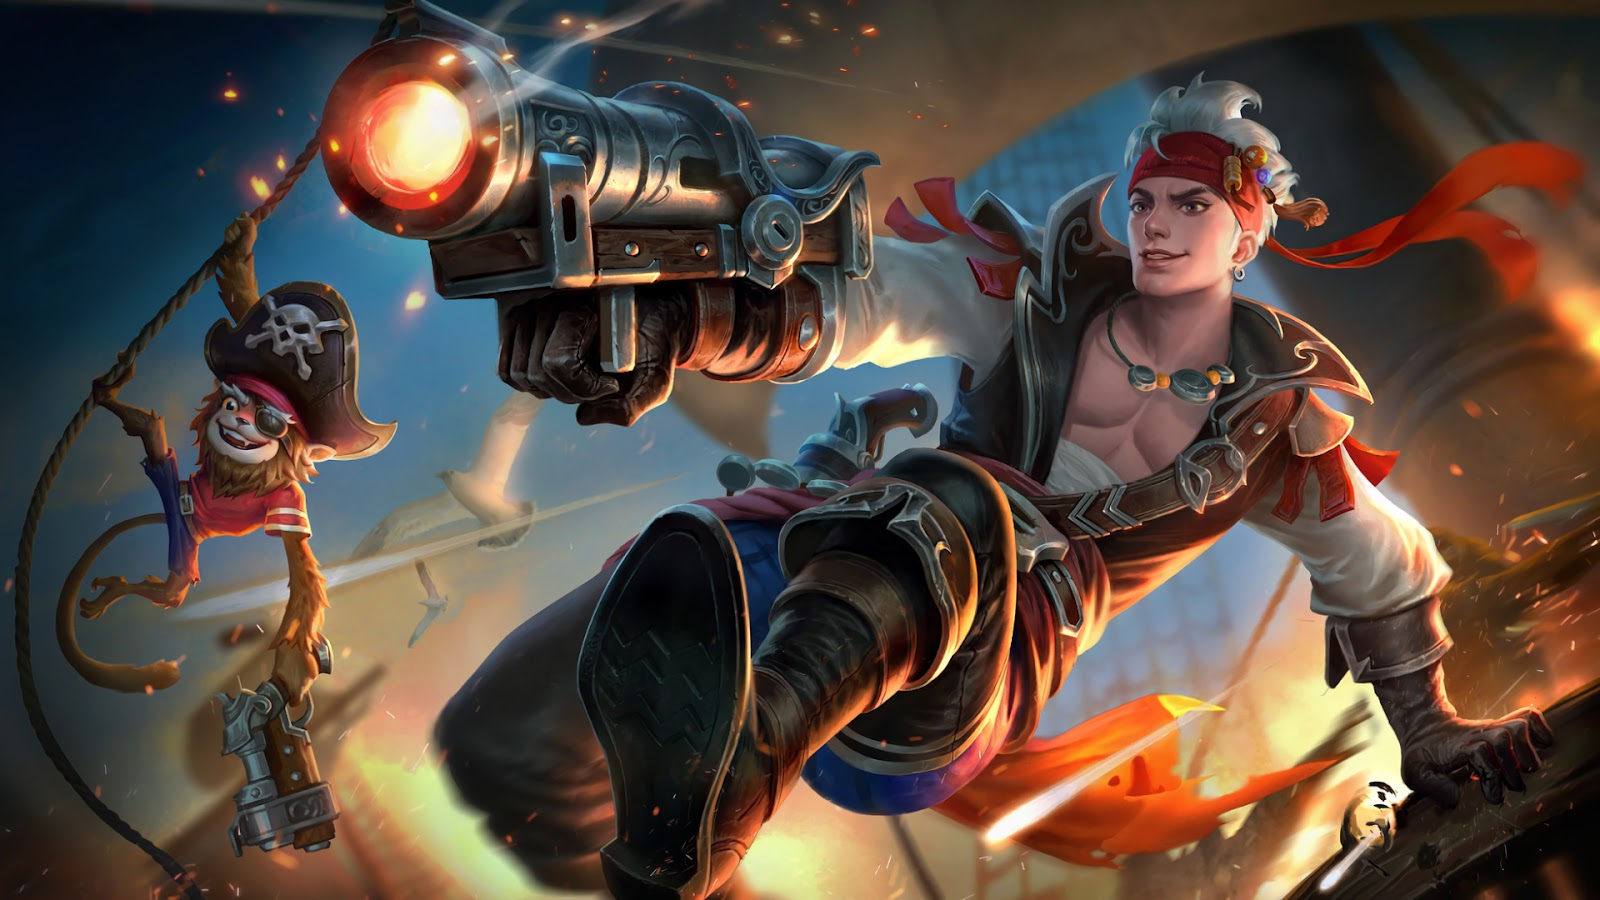 Wallpaper Claude Plunderous Pirate Skin Mobile Legends HD for PC